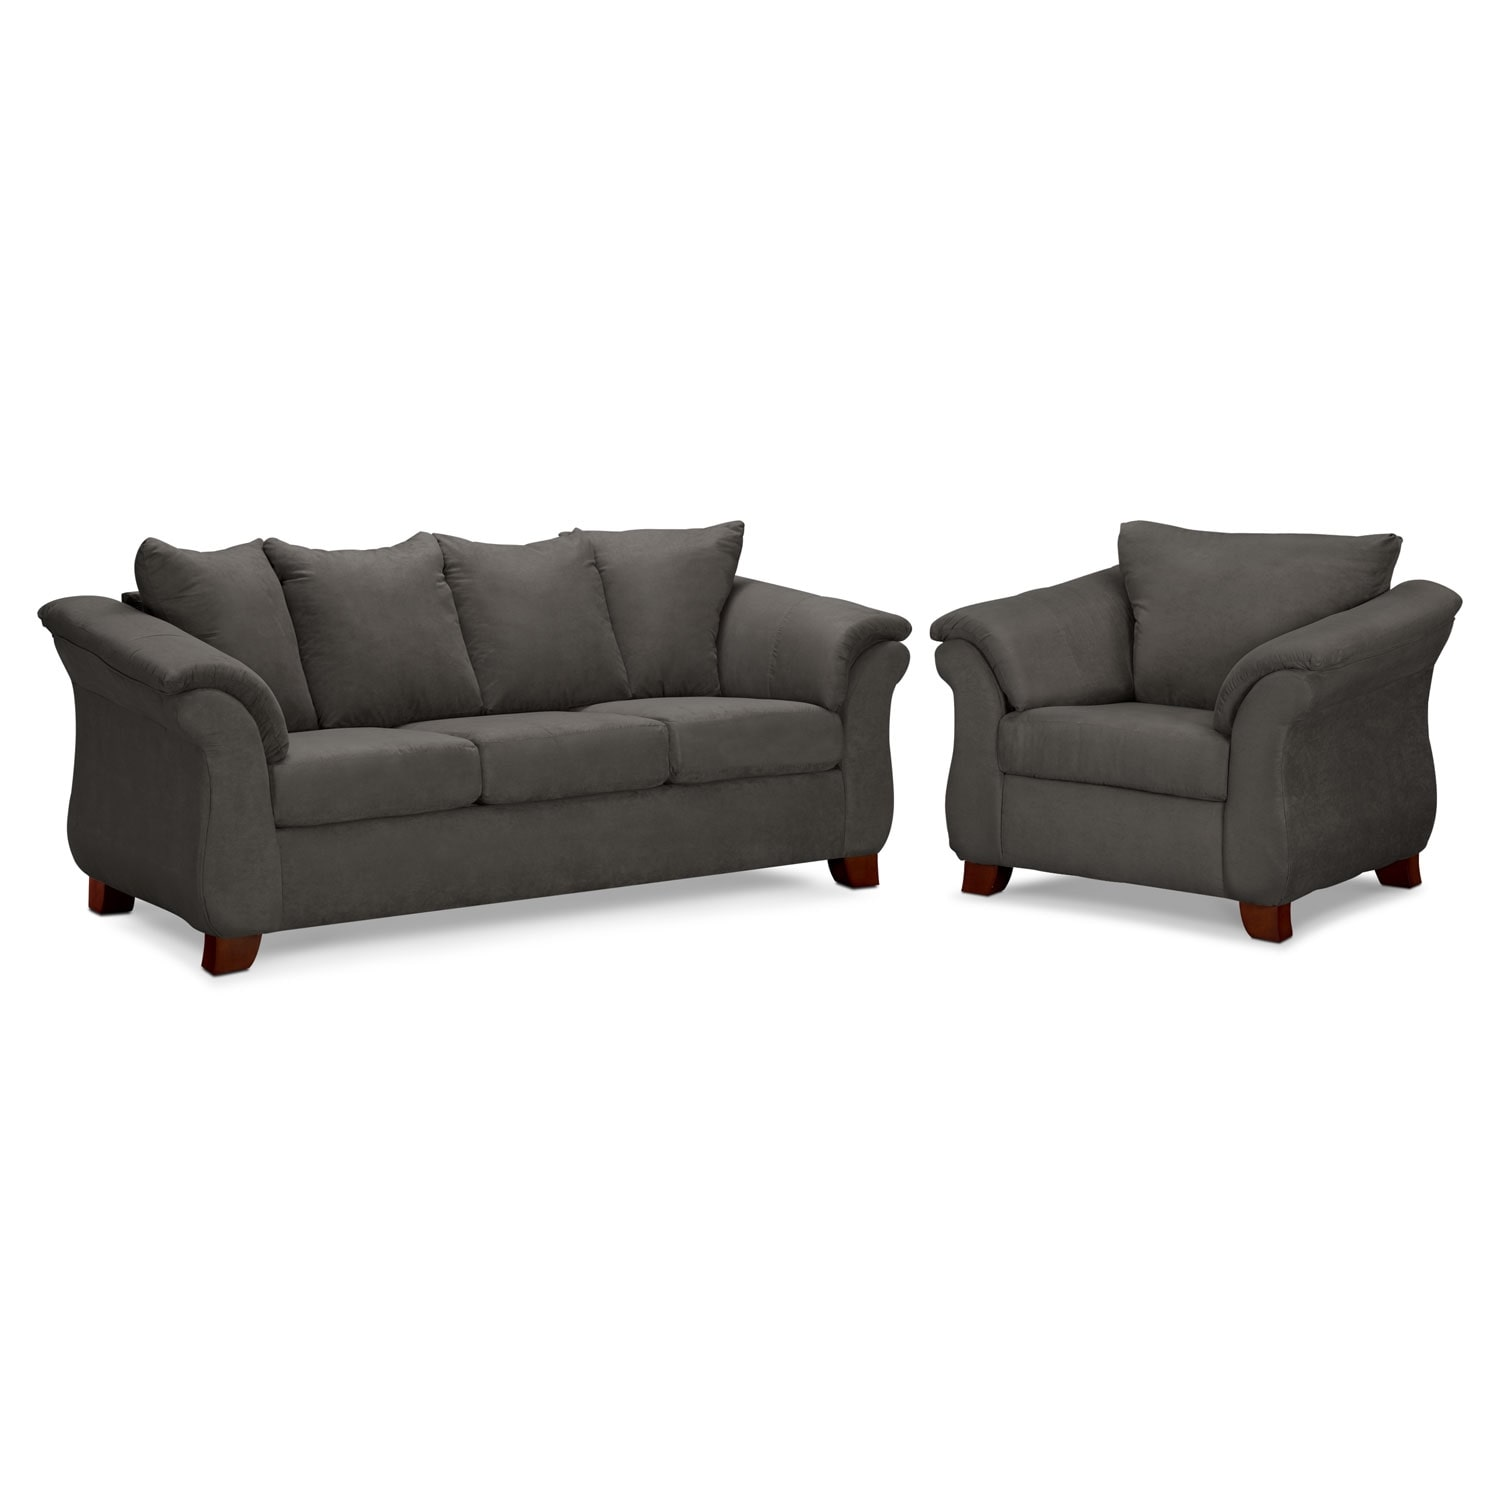 Adrian Sofa and Chair Set - Graphite